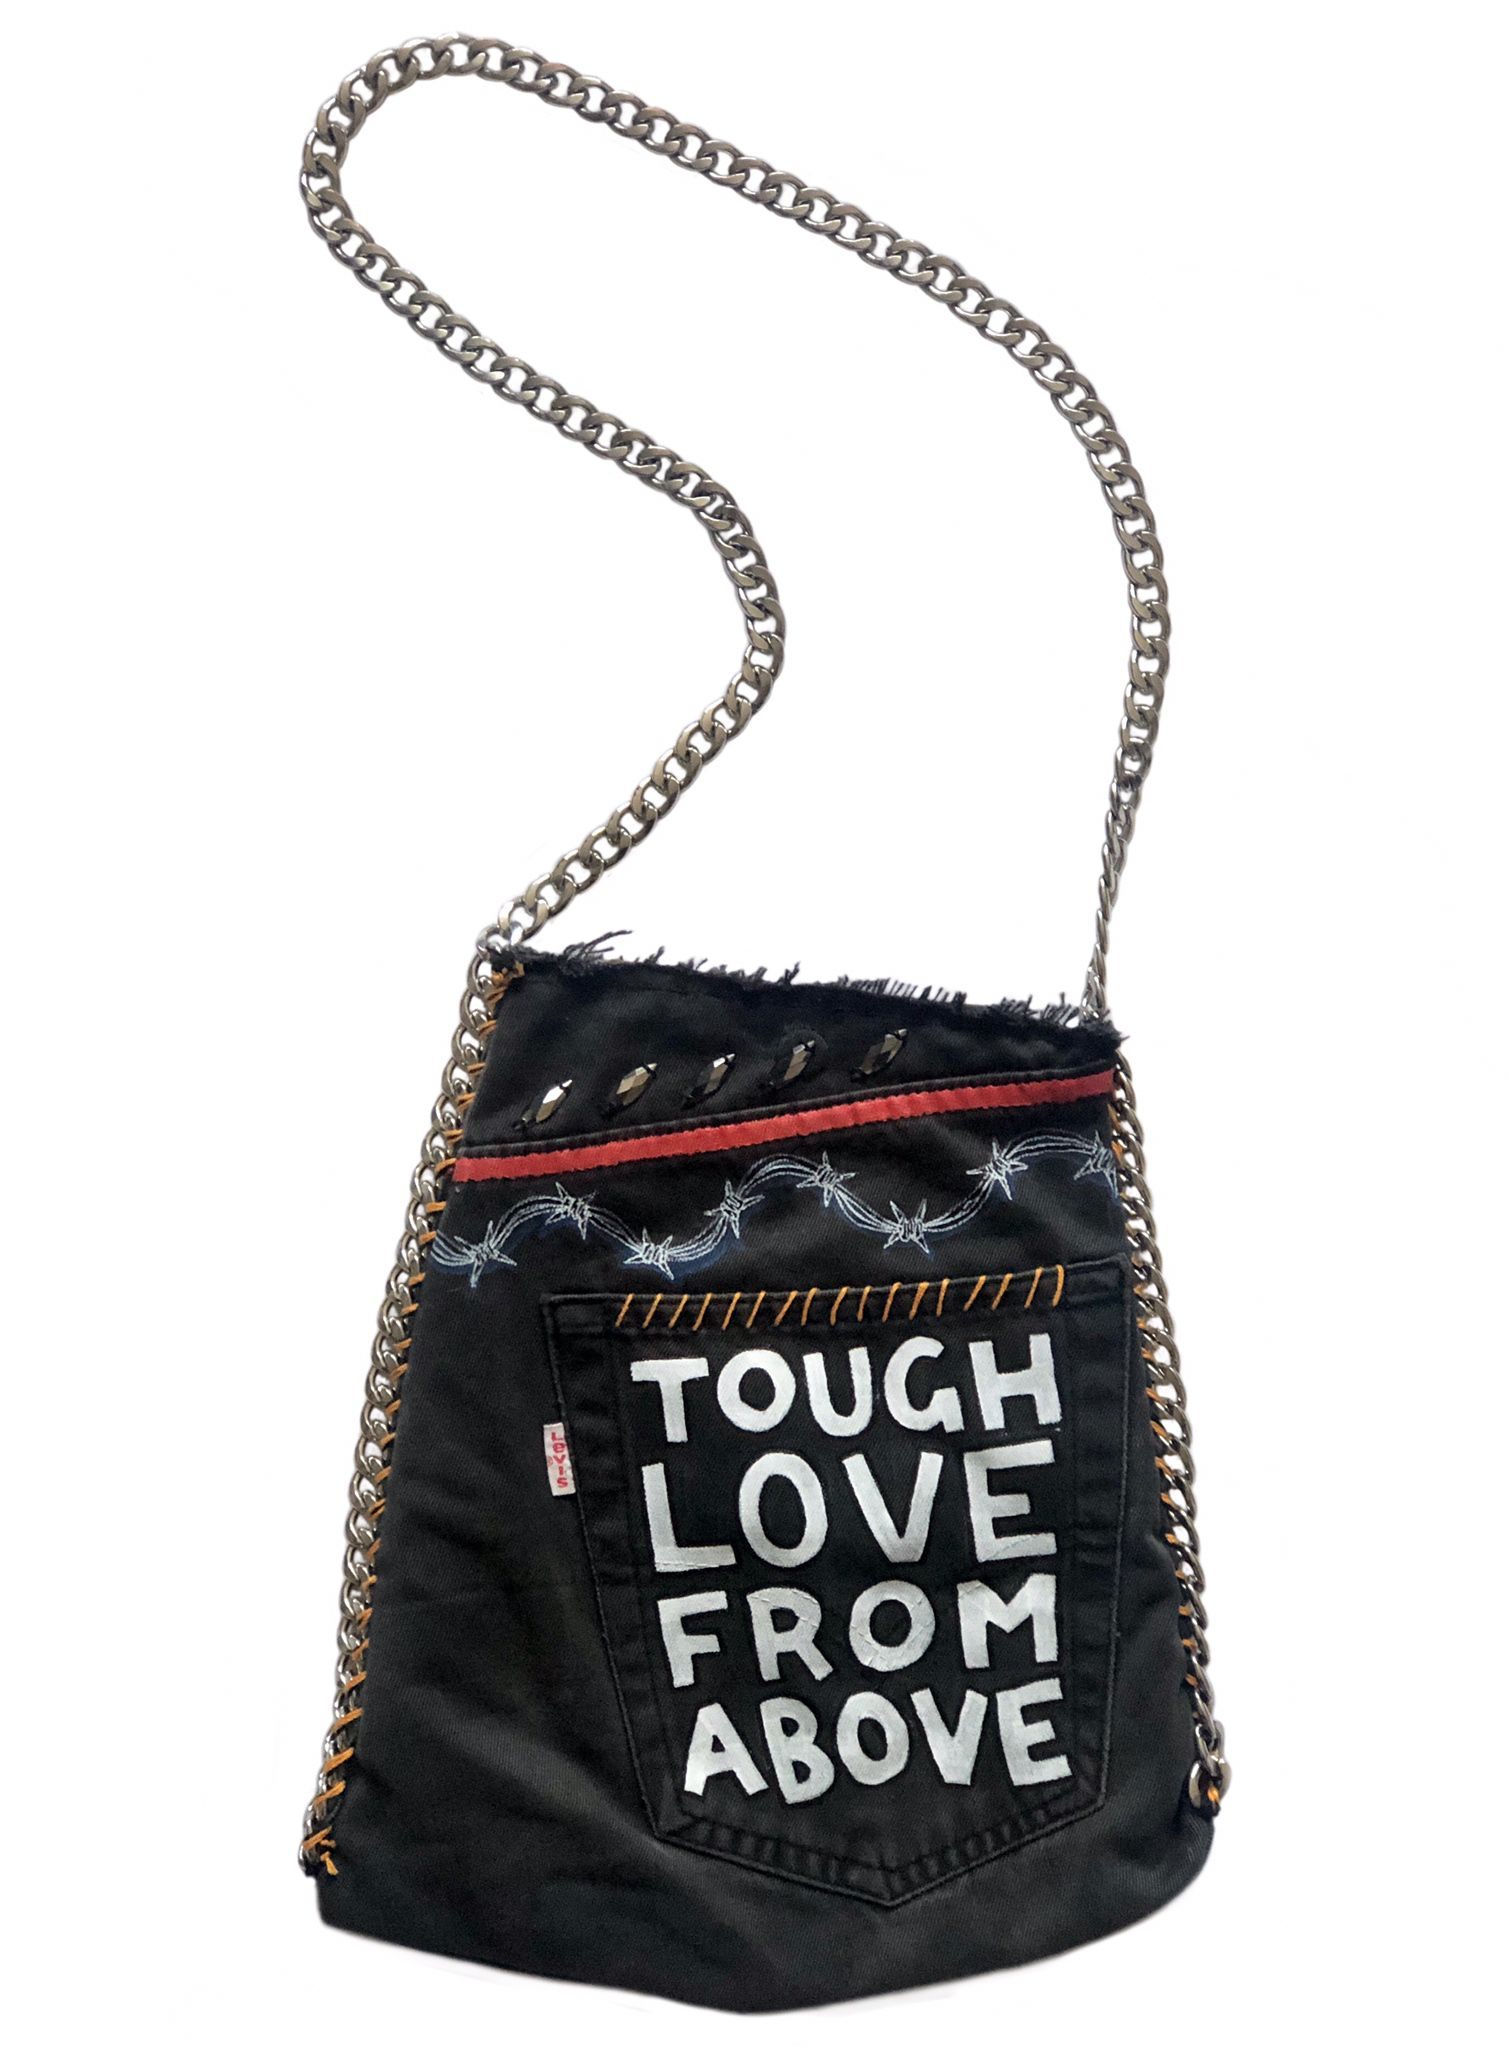 TOUGH LOVE Levi's Upcycled Bag